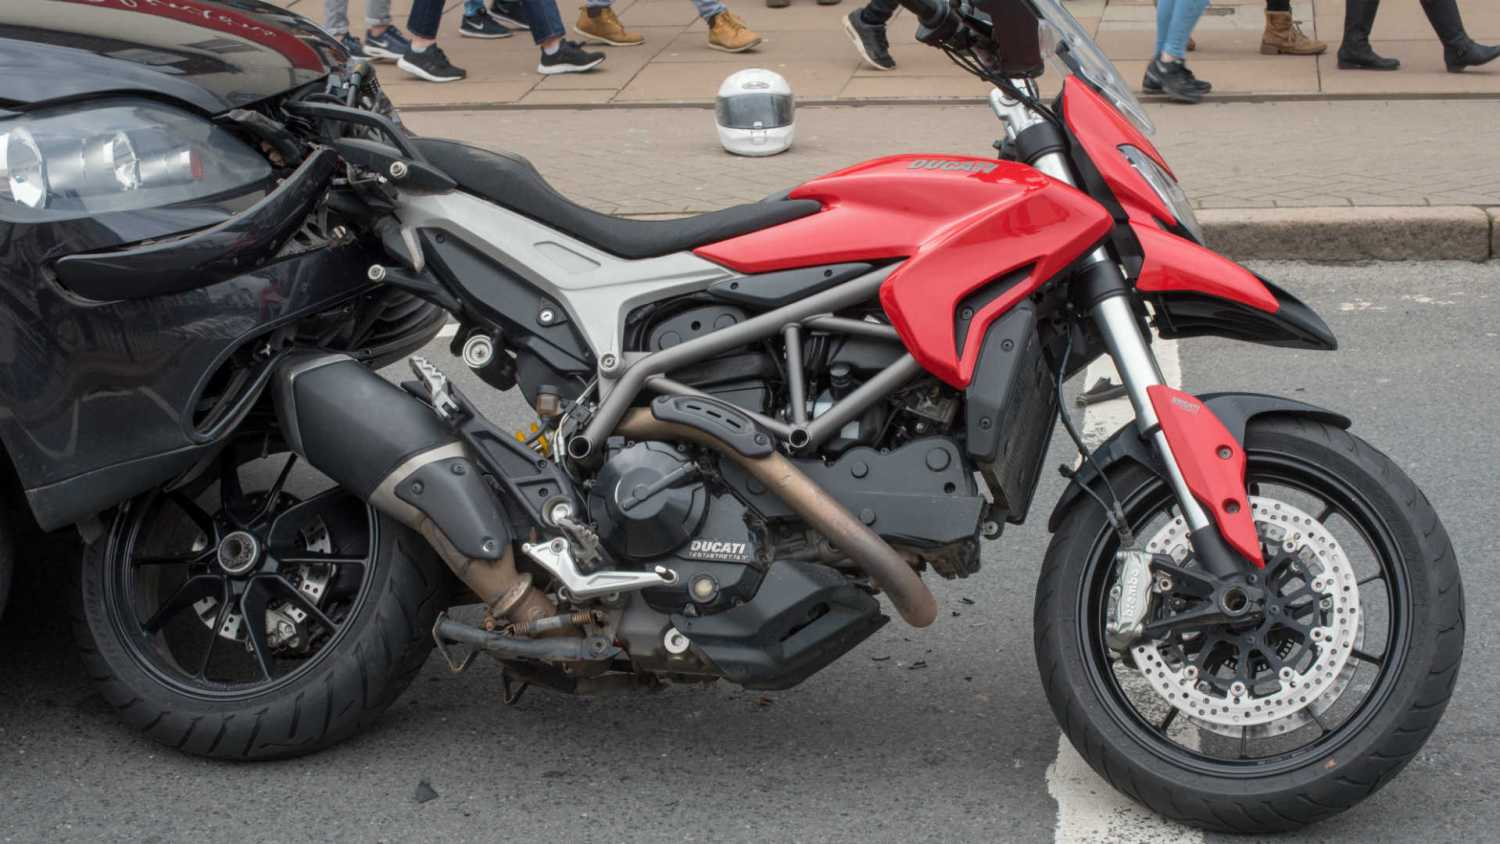 New videos to improve safety of motorcyclists